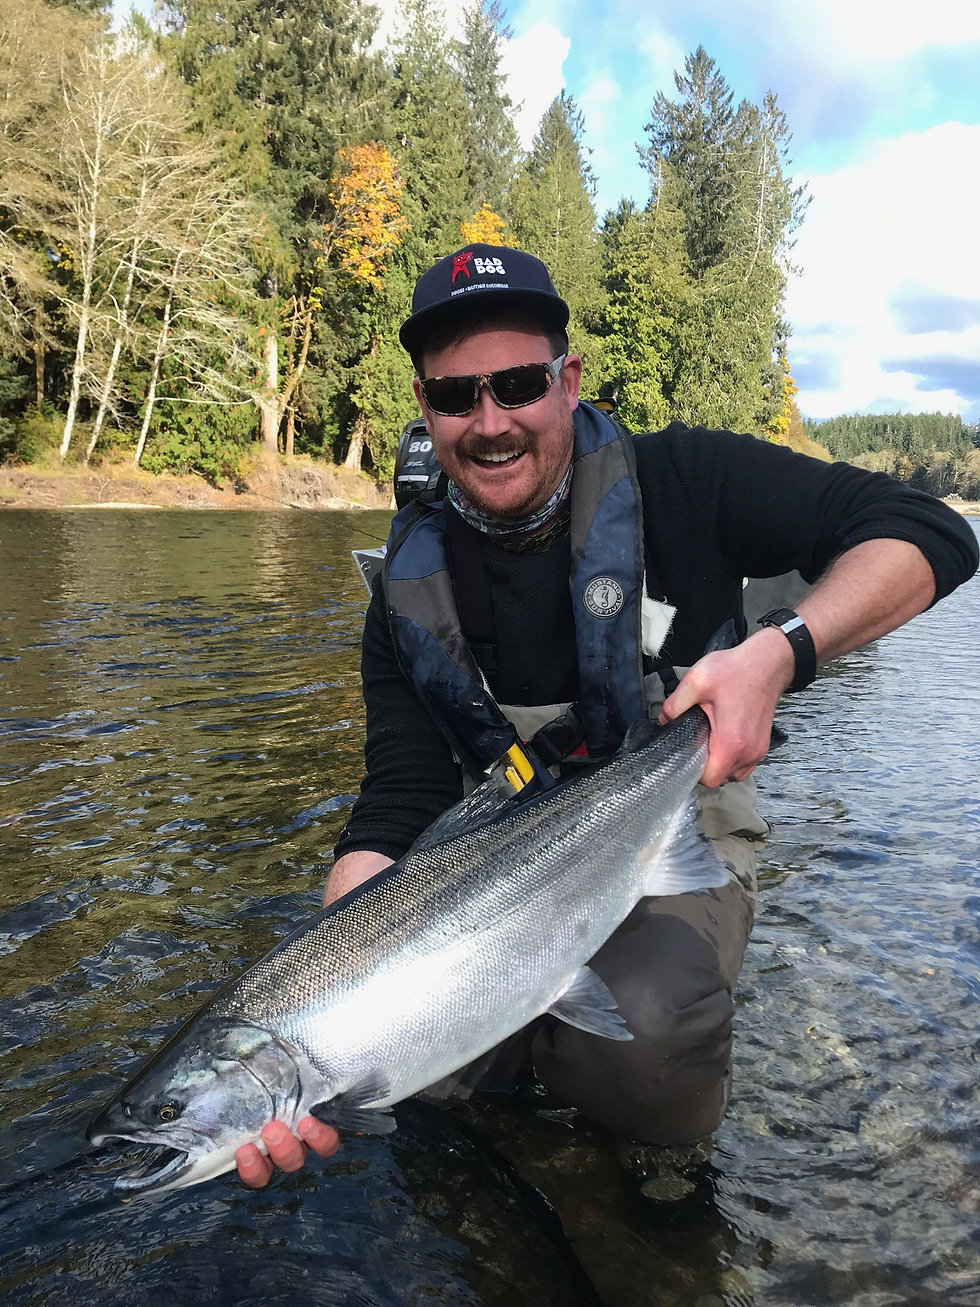 Catching Salmon on the River